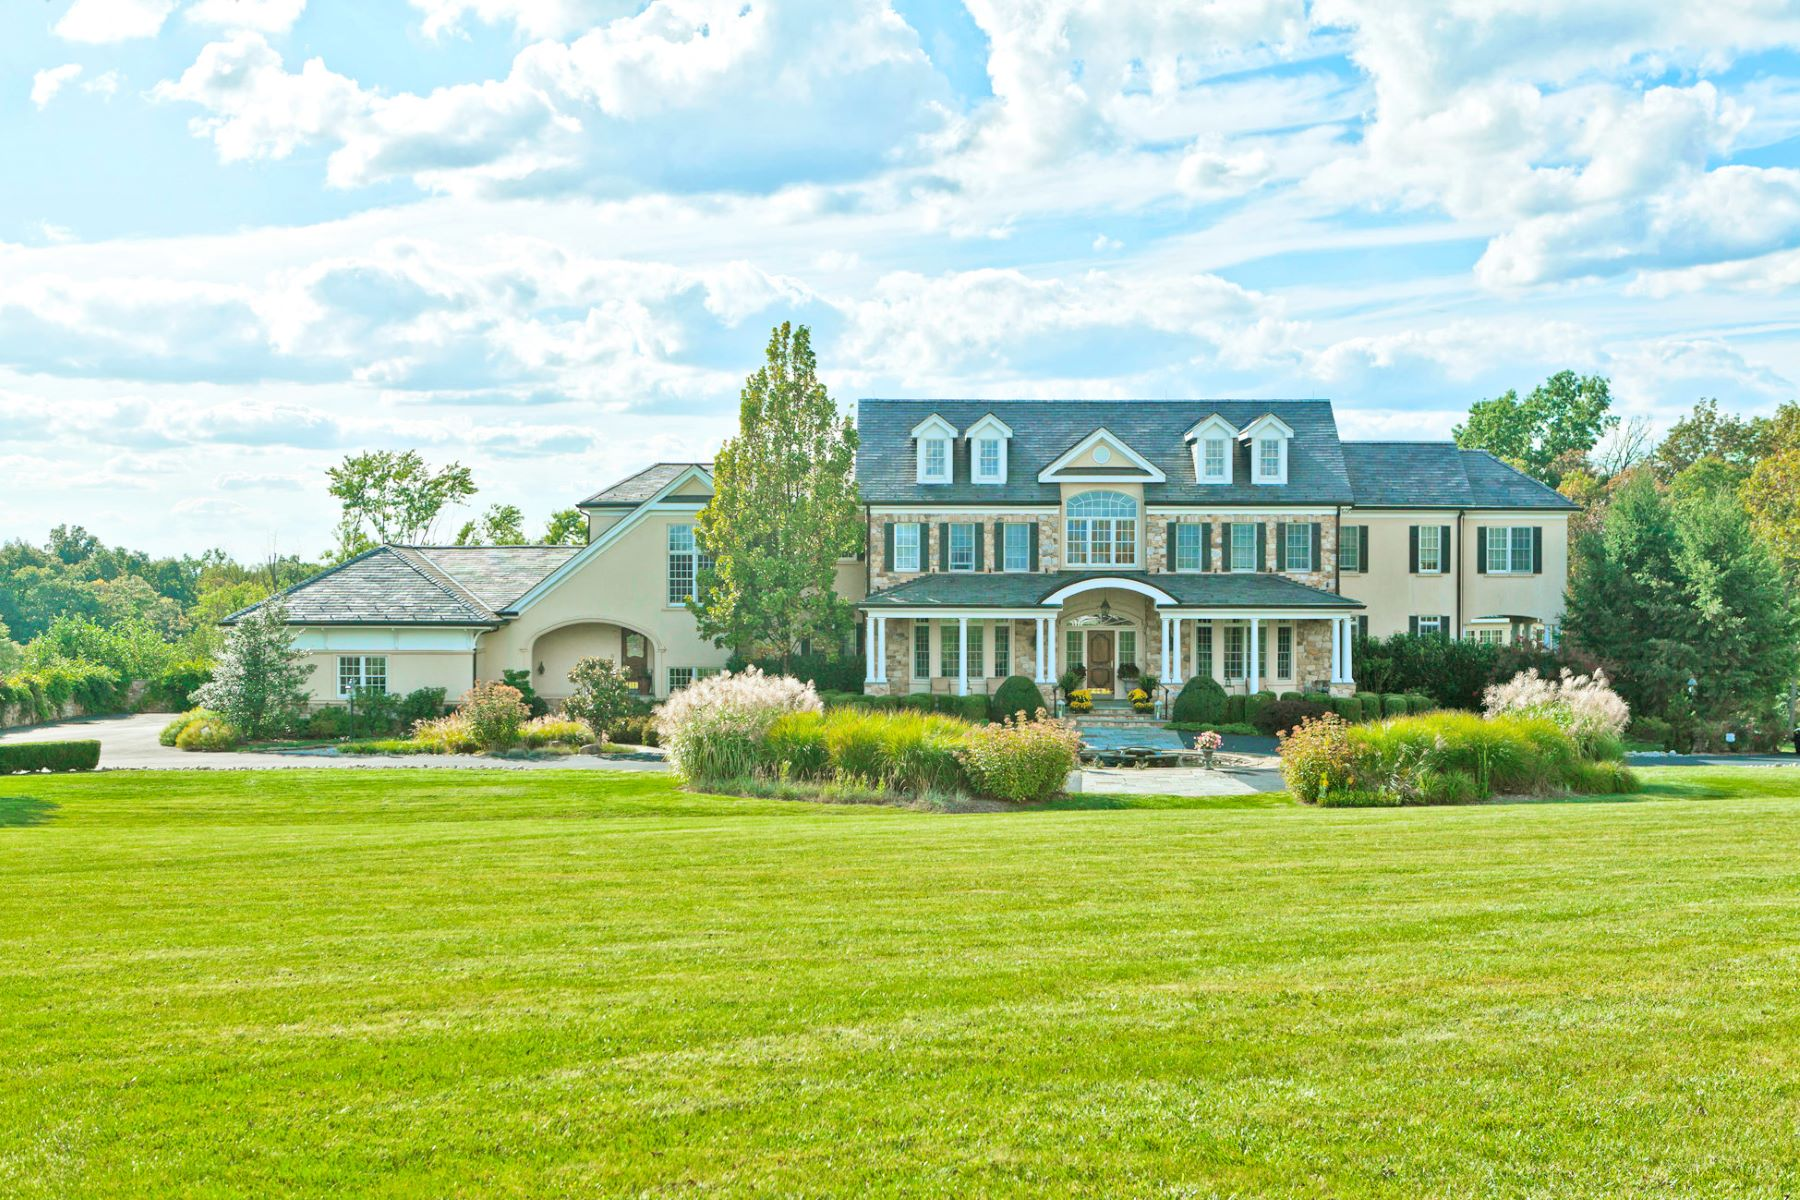 Property para Venda às The Ultimate Wall Street Getaway 131 - 133 Harbourton Woodsville Road Hopewell Township, Lambertville, Nova Jersey 08530 Estados Unidos